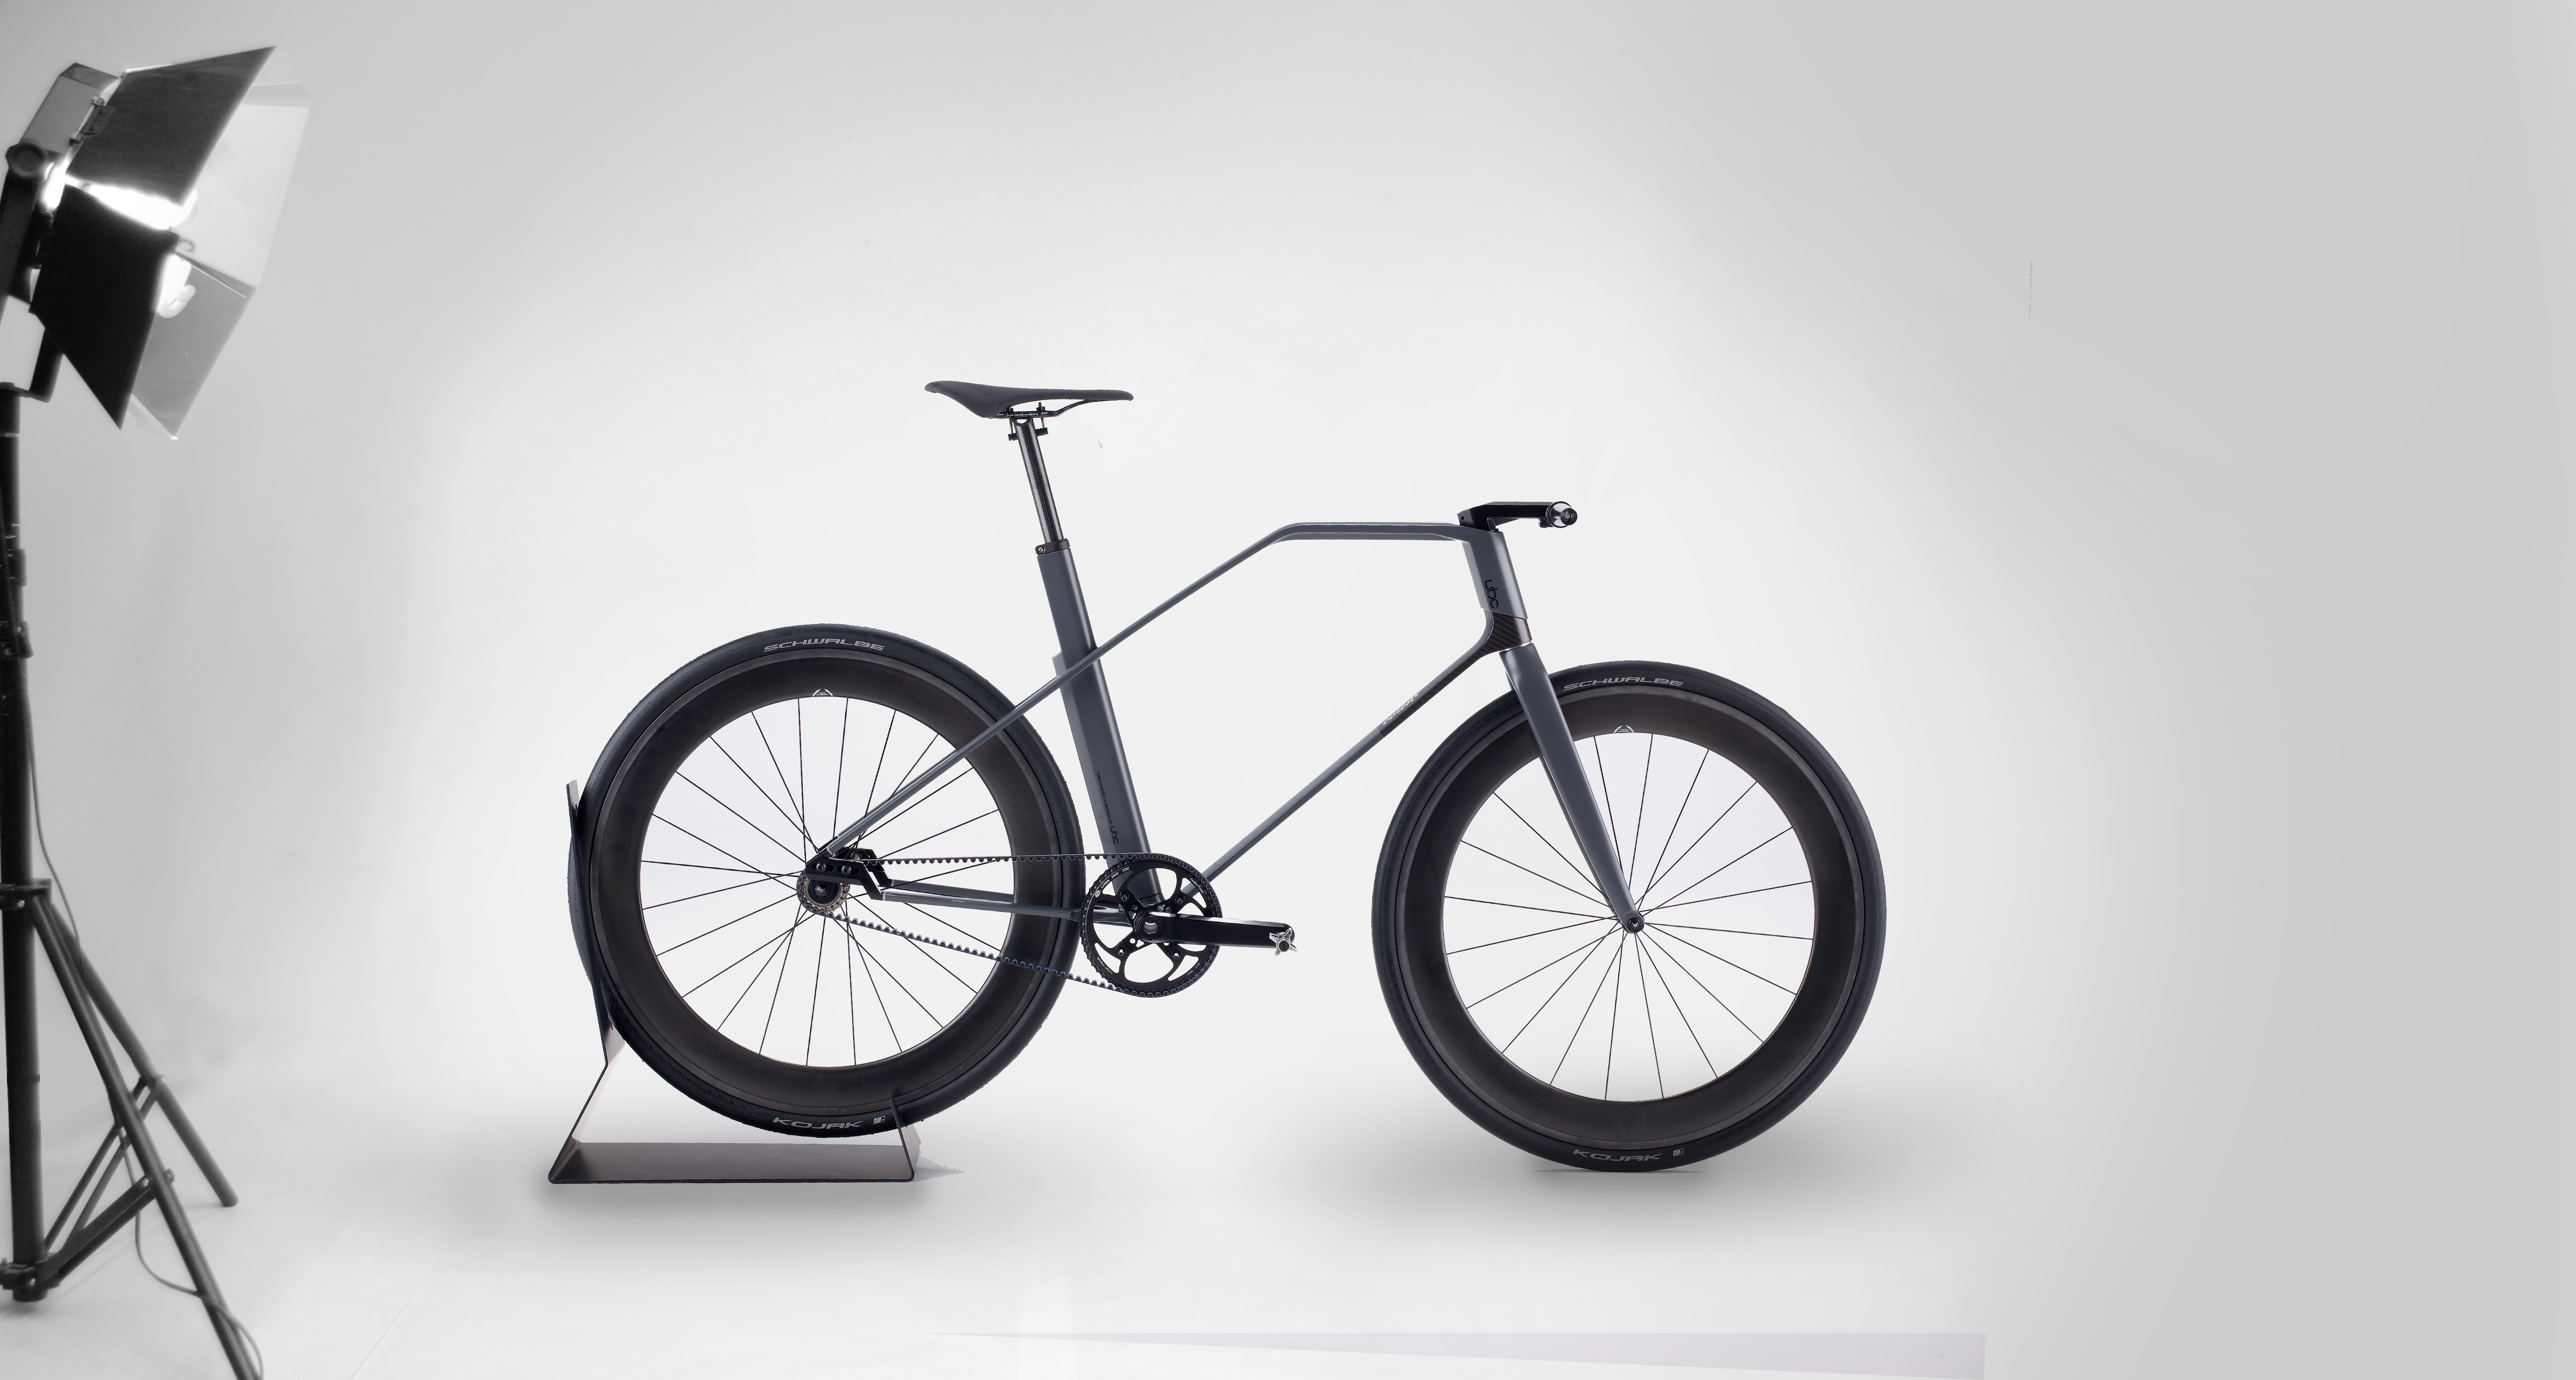 Belt Drive Bling: the 25,0000 Euro Carbon Fiber Fixie and ...